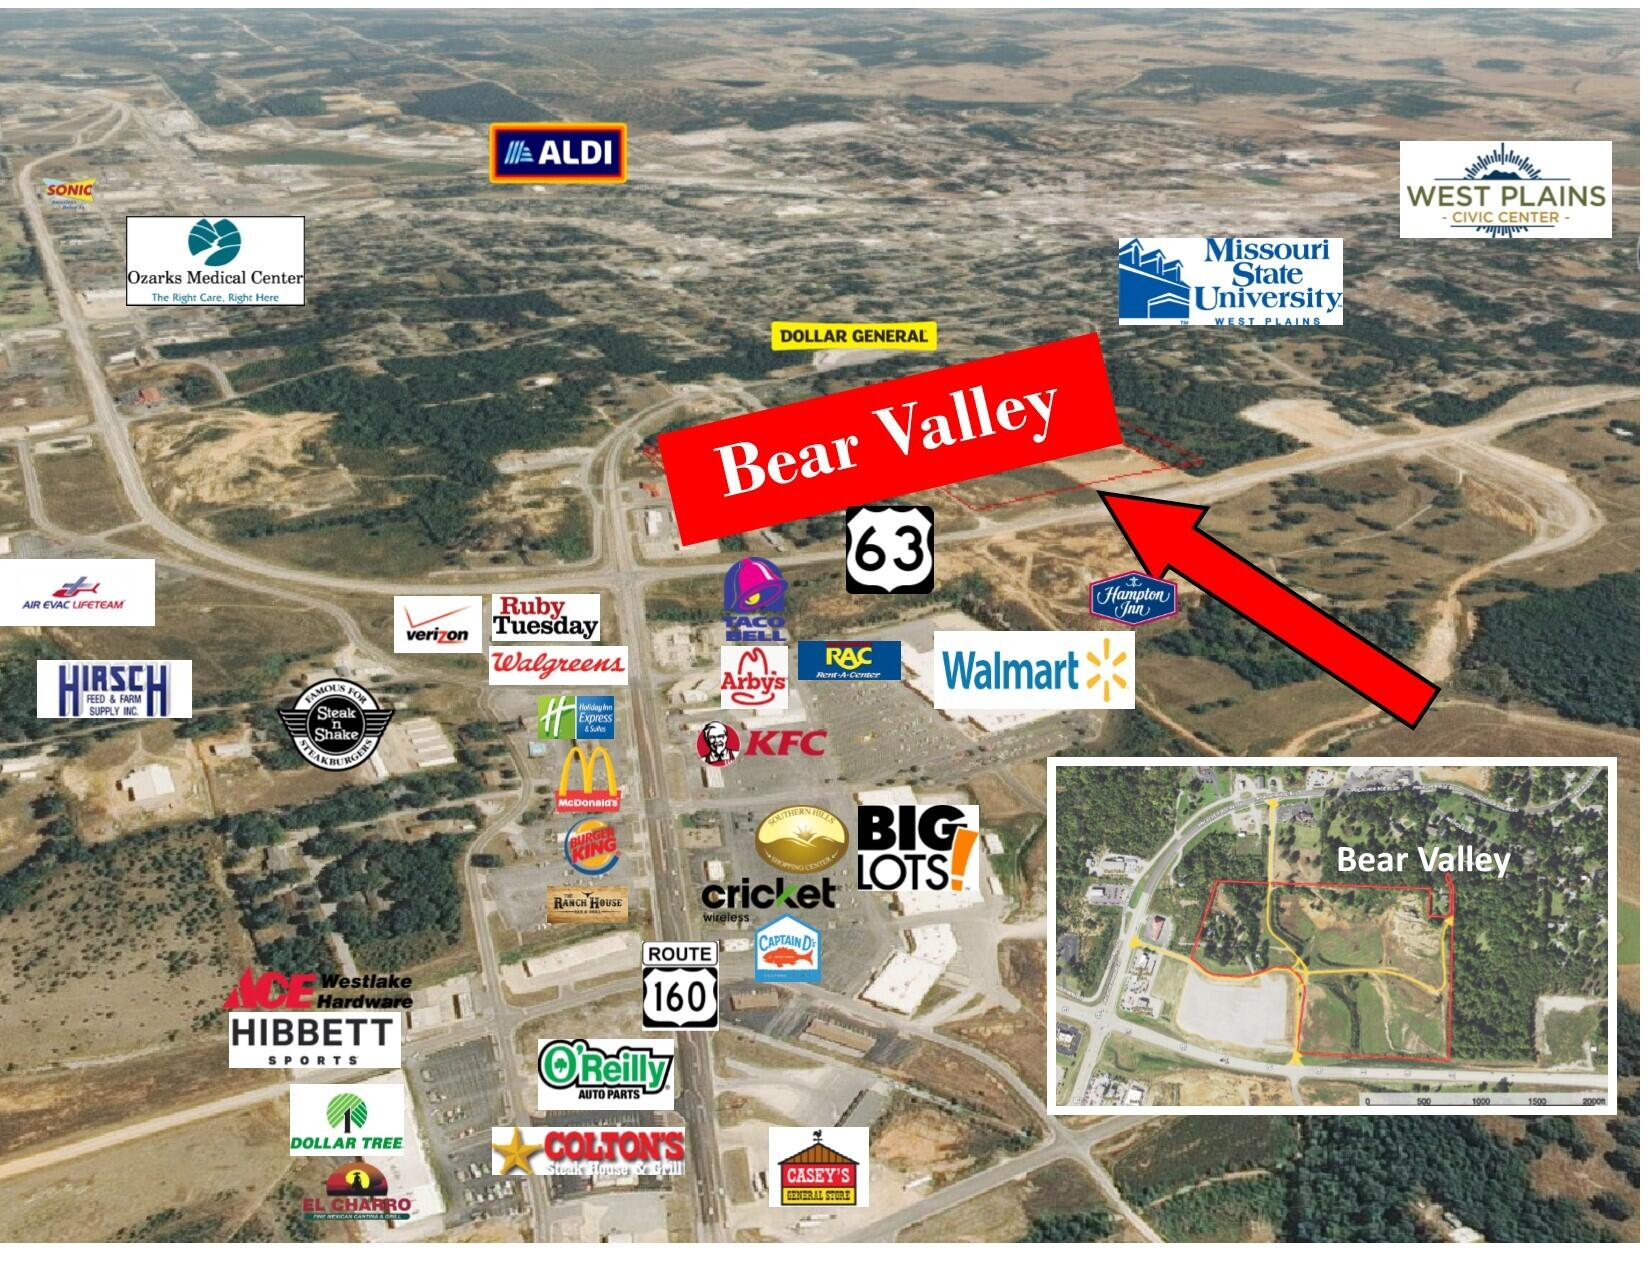 Tbd Hwy 63 & Hwy 160, West Plains, MO 65775 - West Plains, MO real estate listing